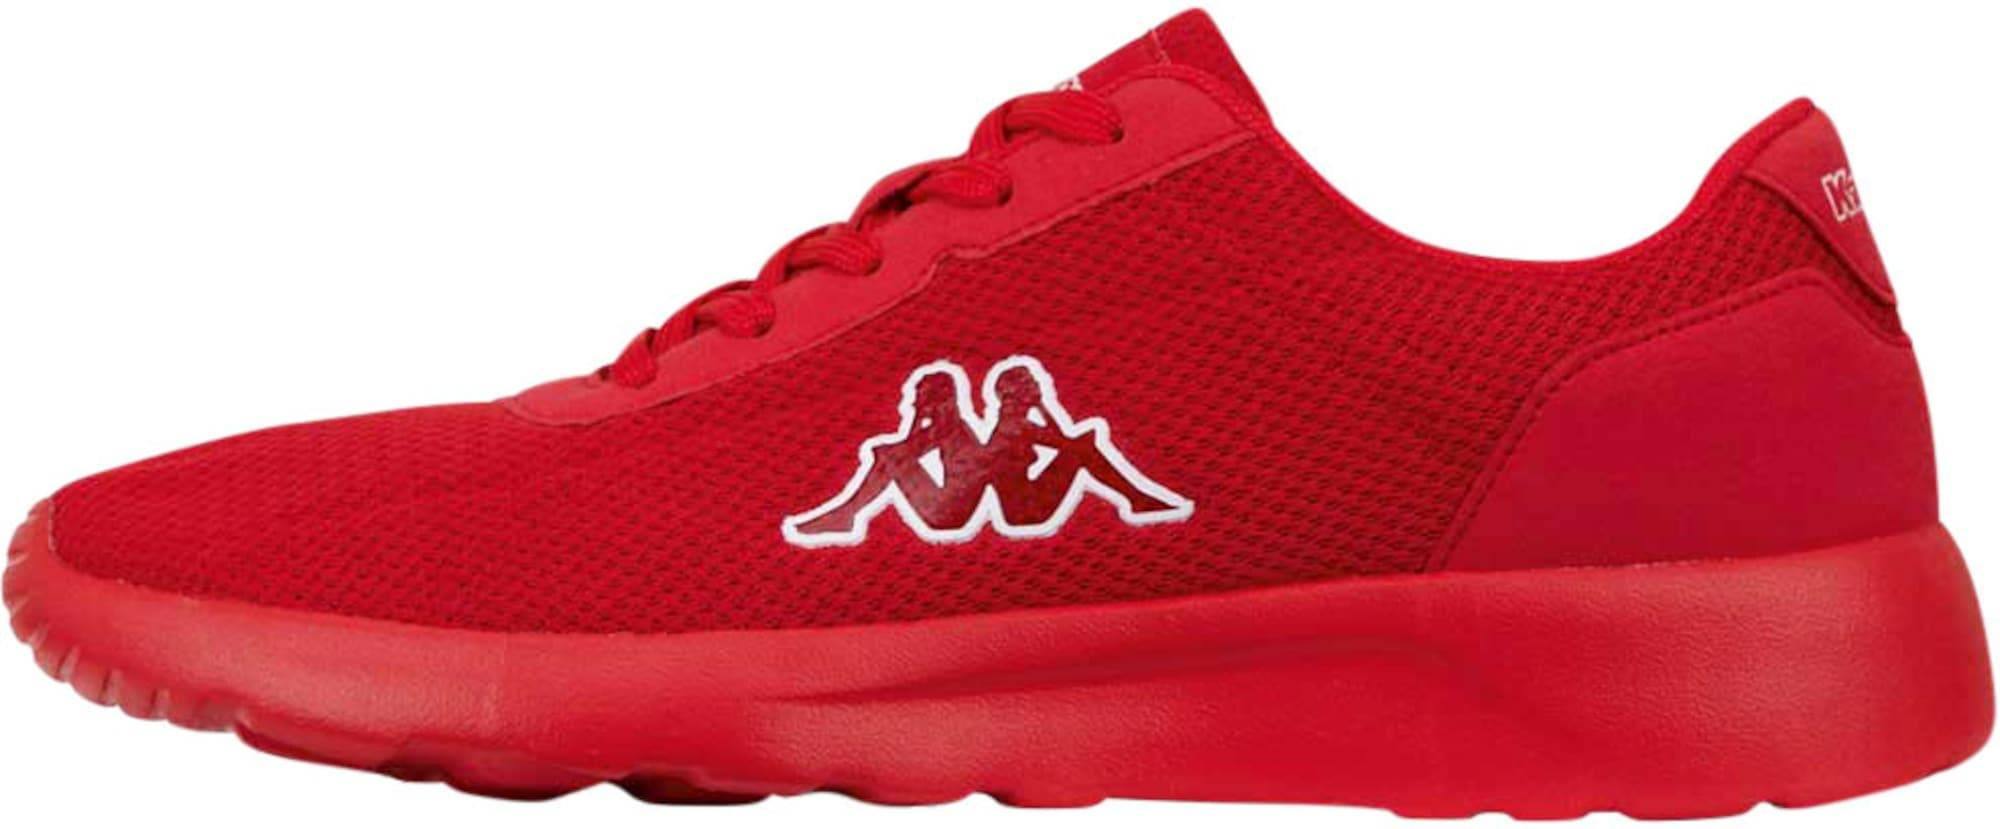 KAPPA Chaussure de course  - Rouge - Taille: 44 - male